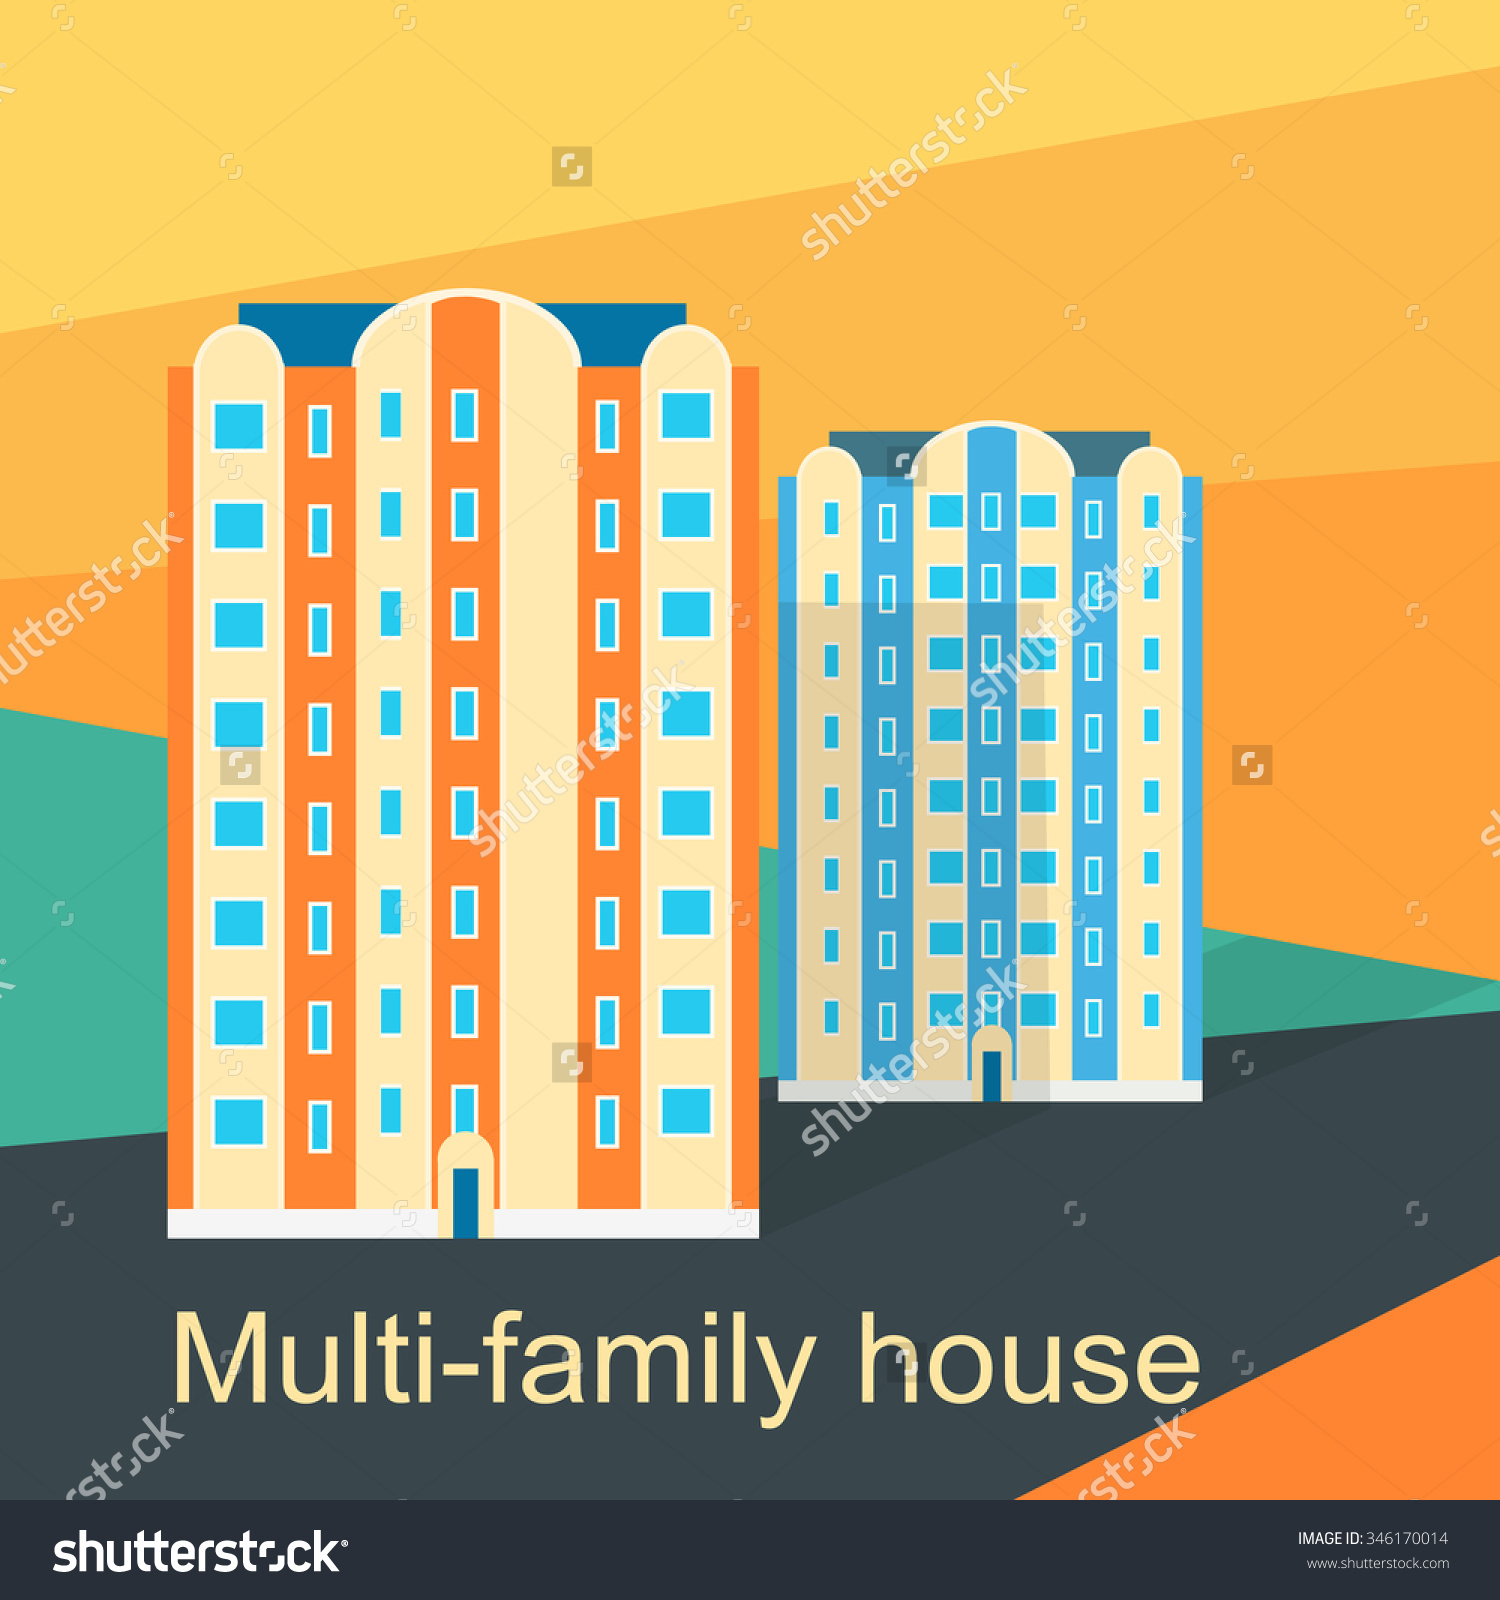 Multifamily House Design Flat Apartment Architecture Stock Vector.